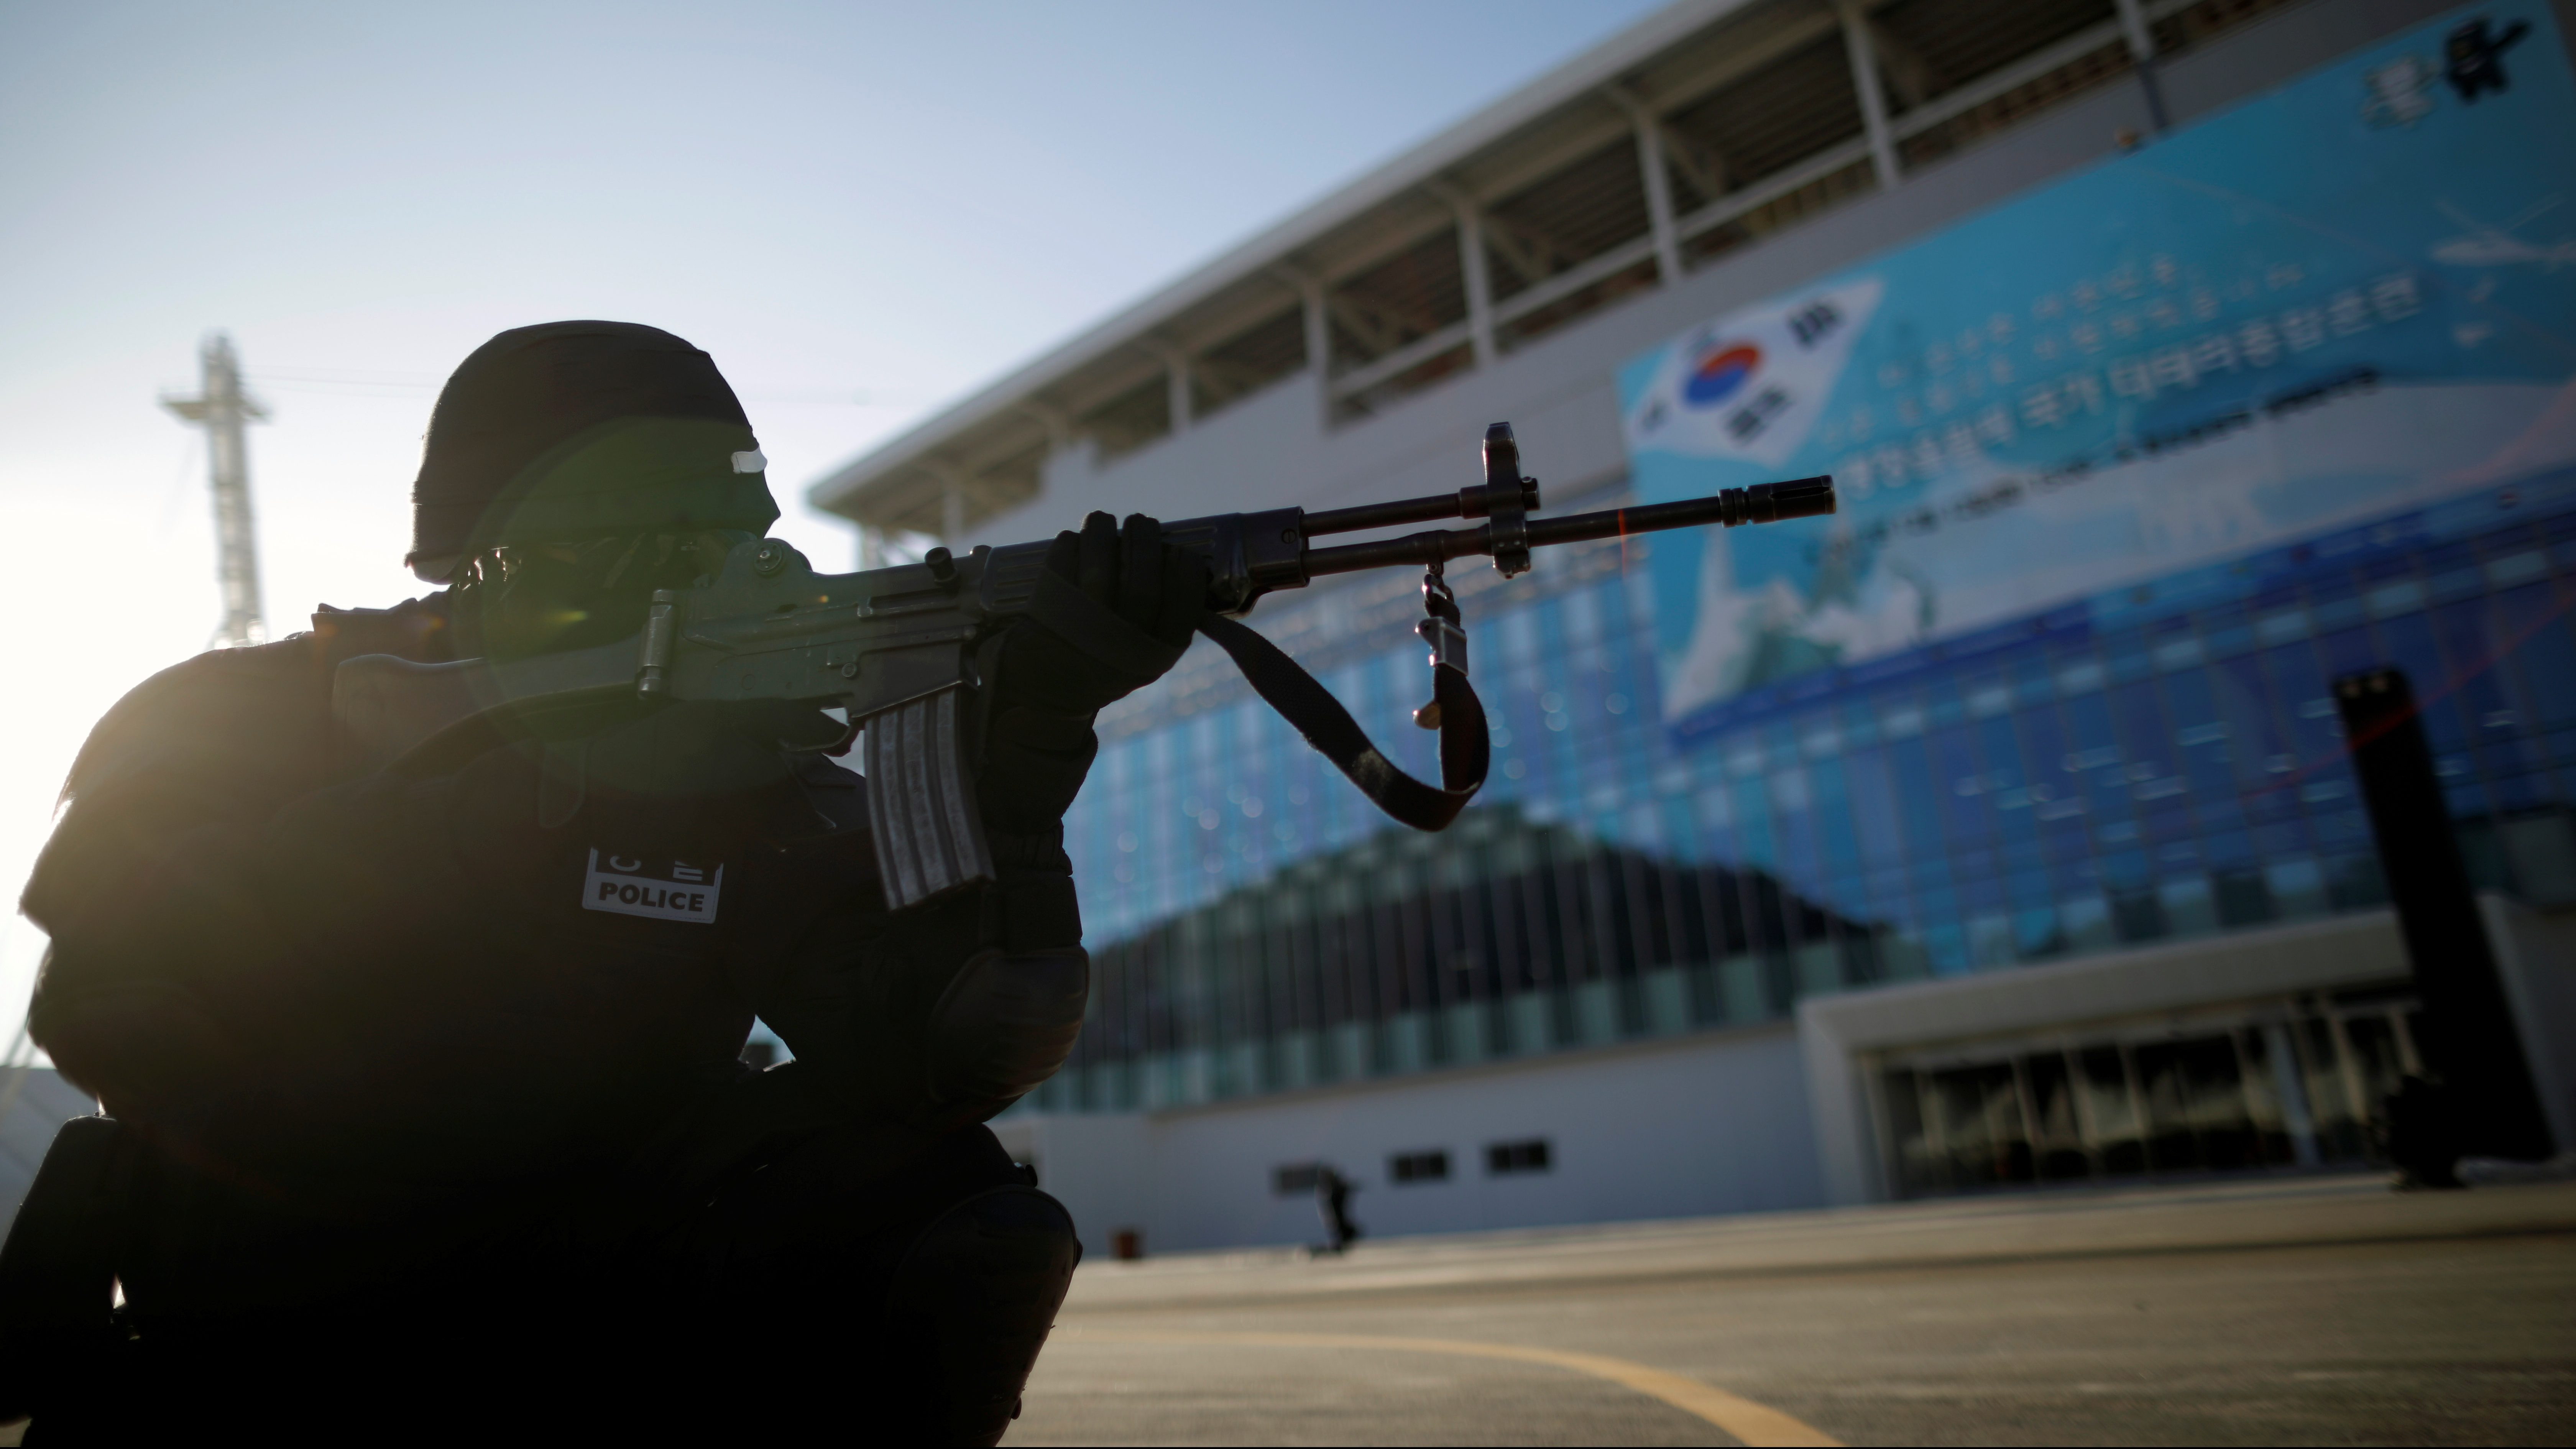 A South Korean police officer takes part in a security drill ahead of the 2018 Pyeongchang Winter Olympic Games at the Olympic Stadium, the venue for the opening and closing ceremony in Pyeongchang, South Korea December 12, 2017.